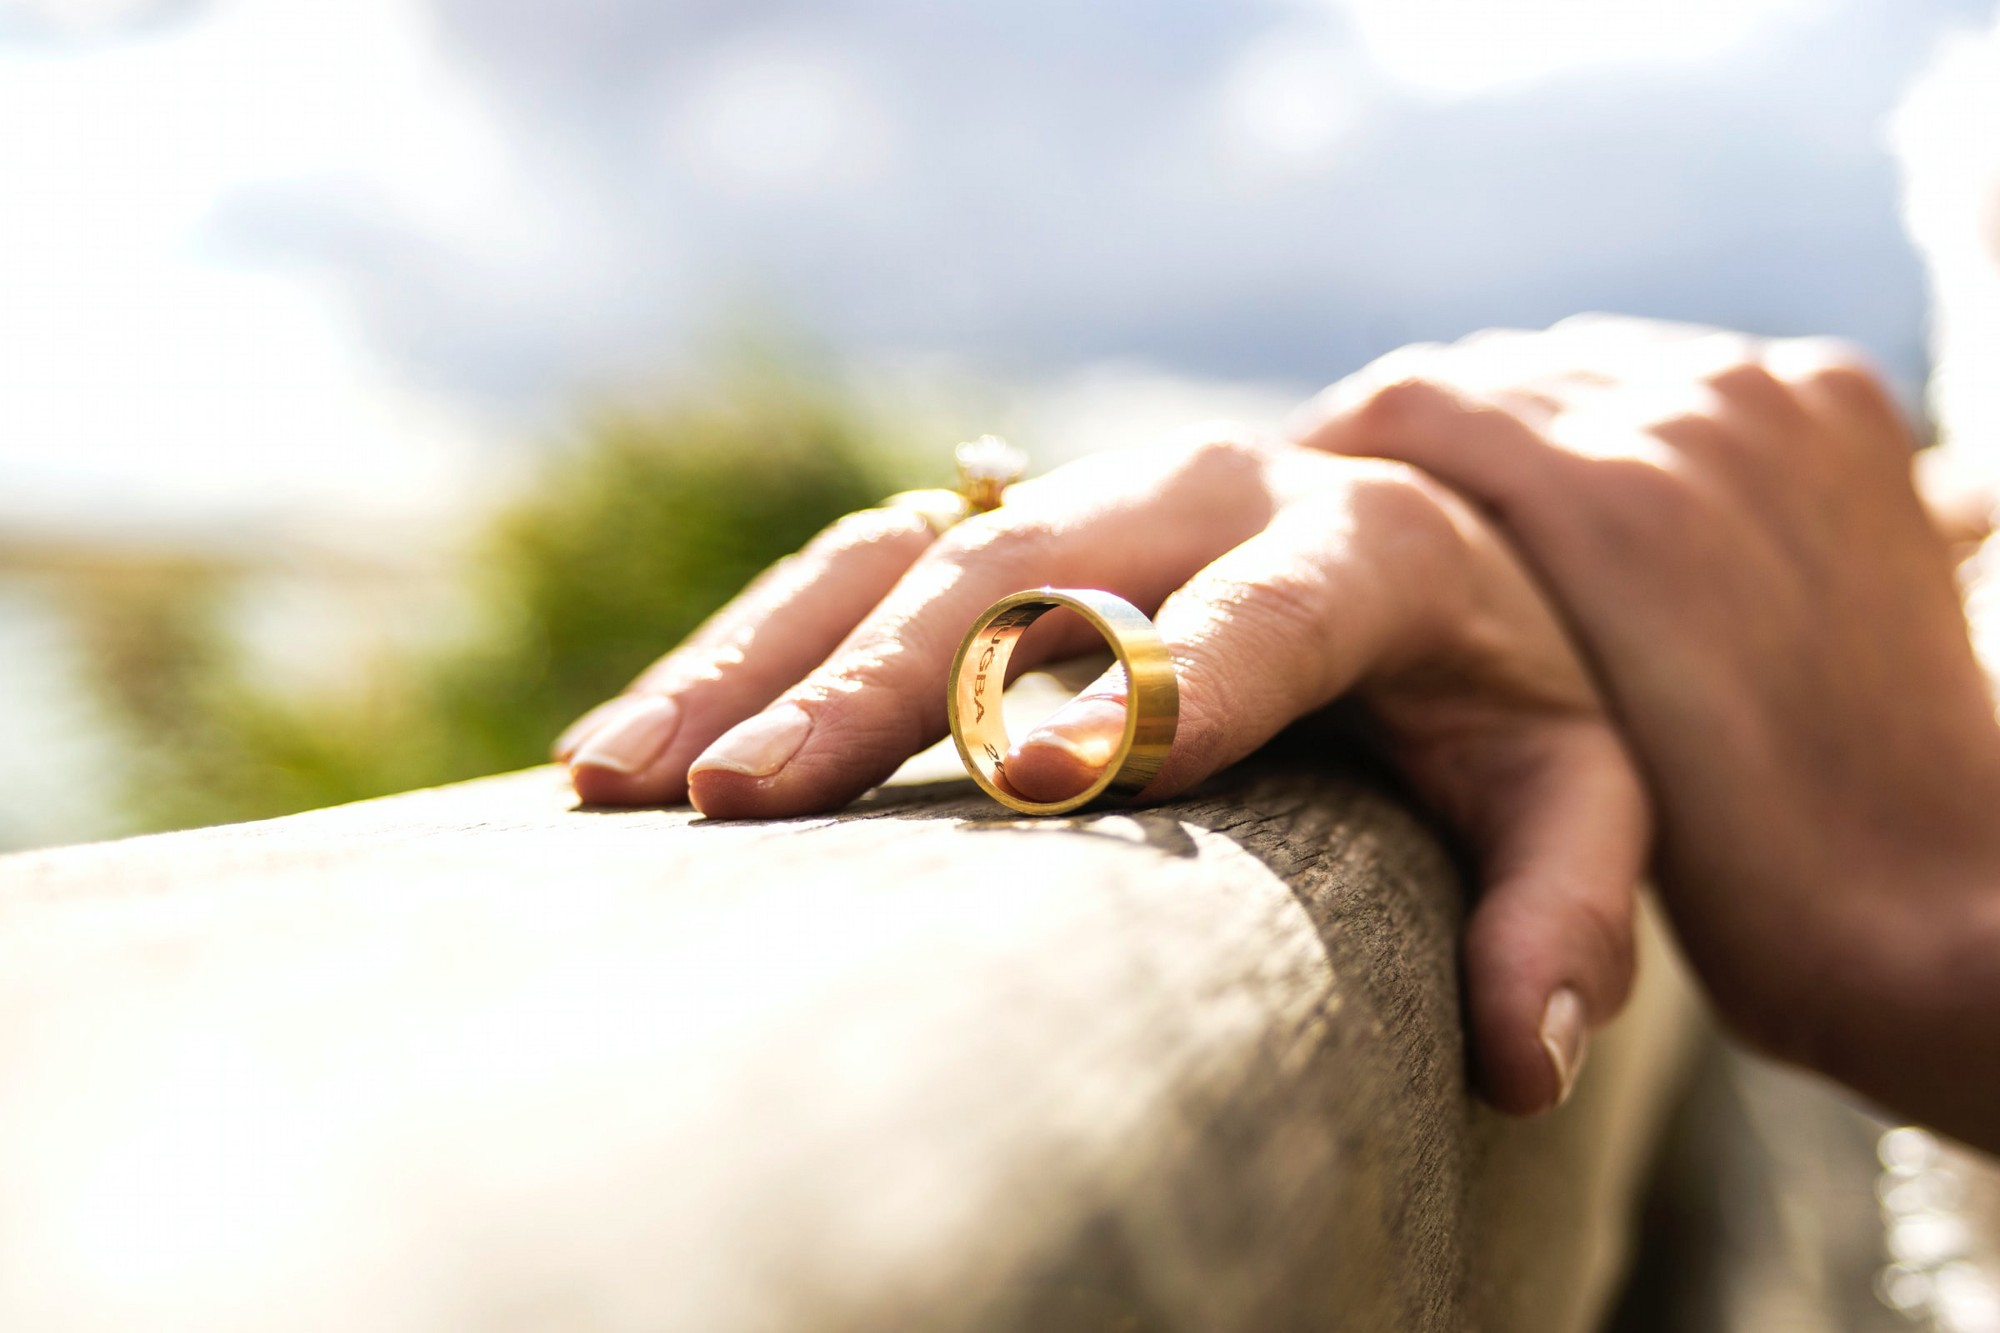 A hand resting on a wall. The tip of one finger is inside a wedding ring.